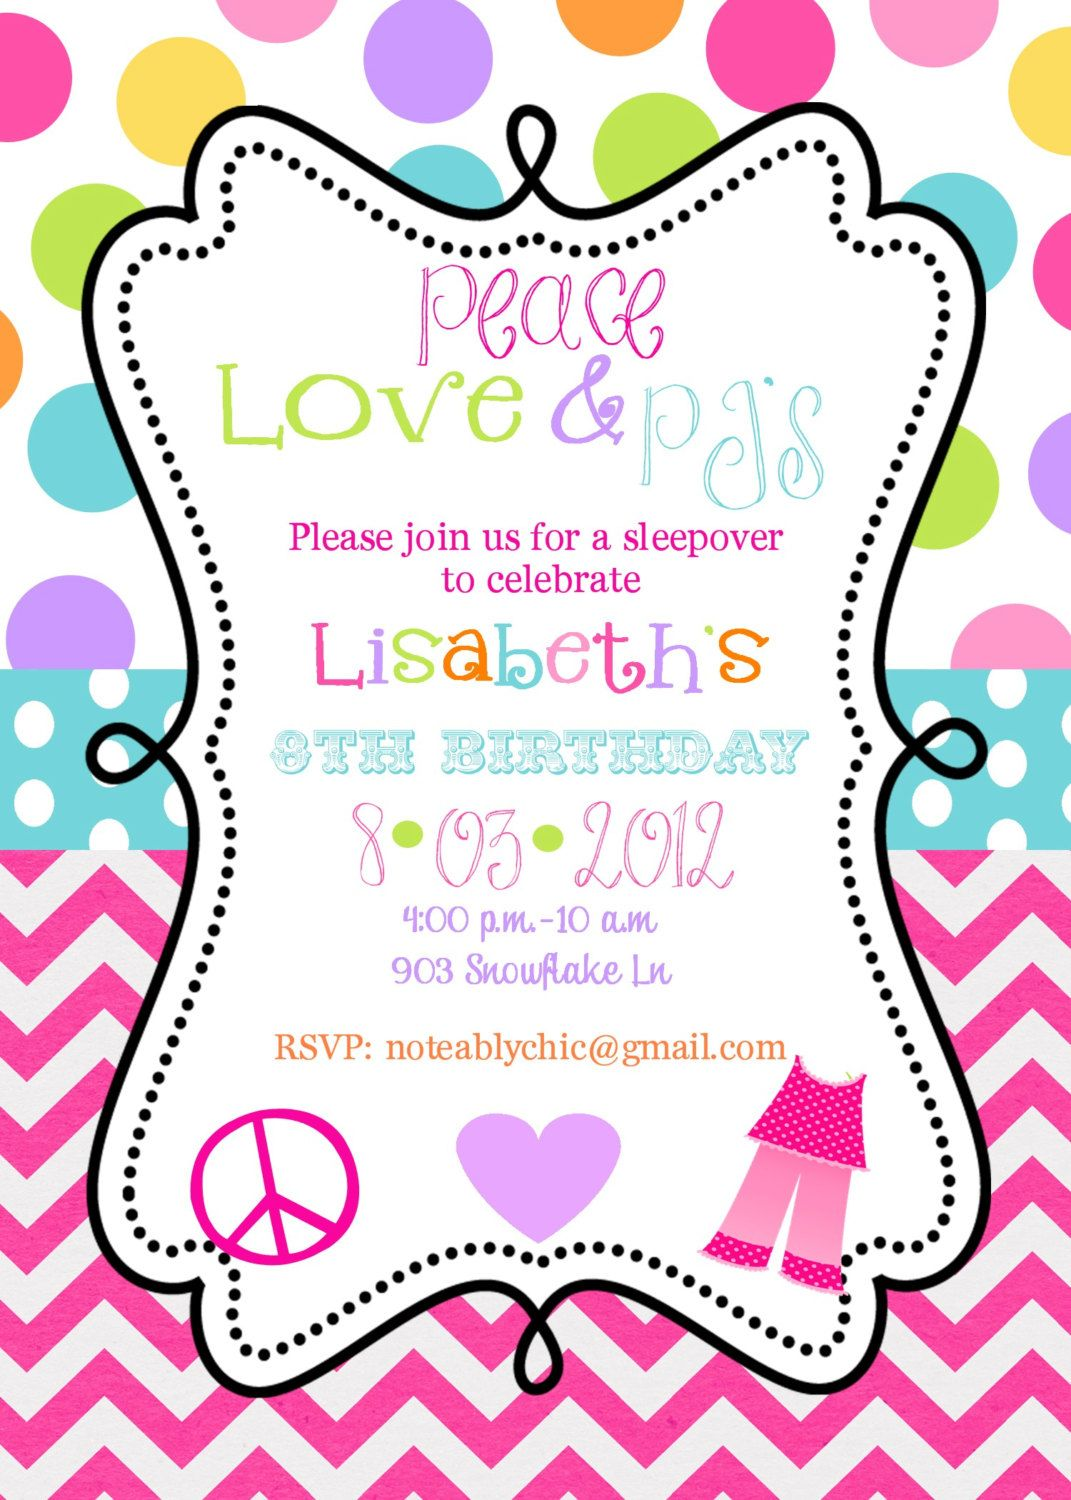 12 Peace Love Pjs Pajama Party Sleepover Slumber Party Birthday – Free Printable Slumber Party Invitation Templates